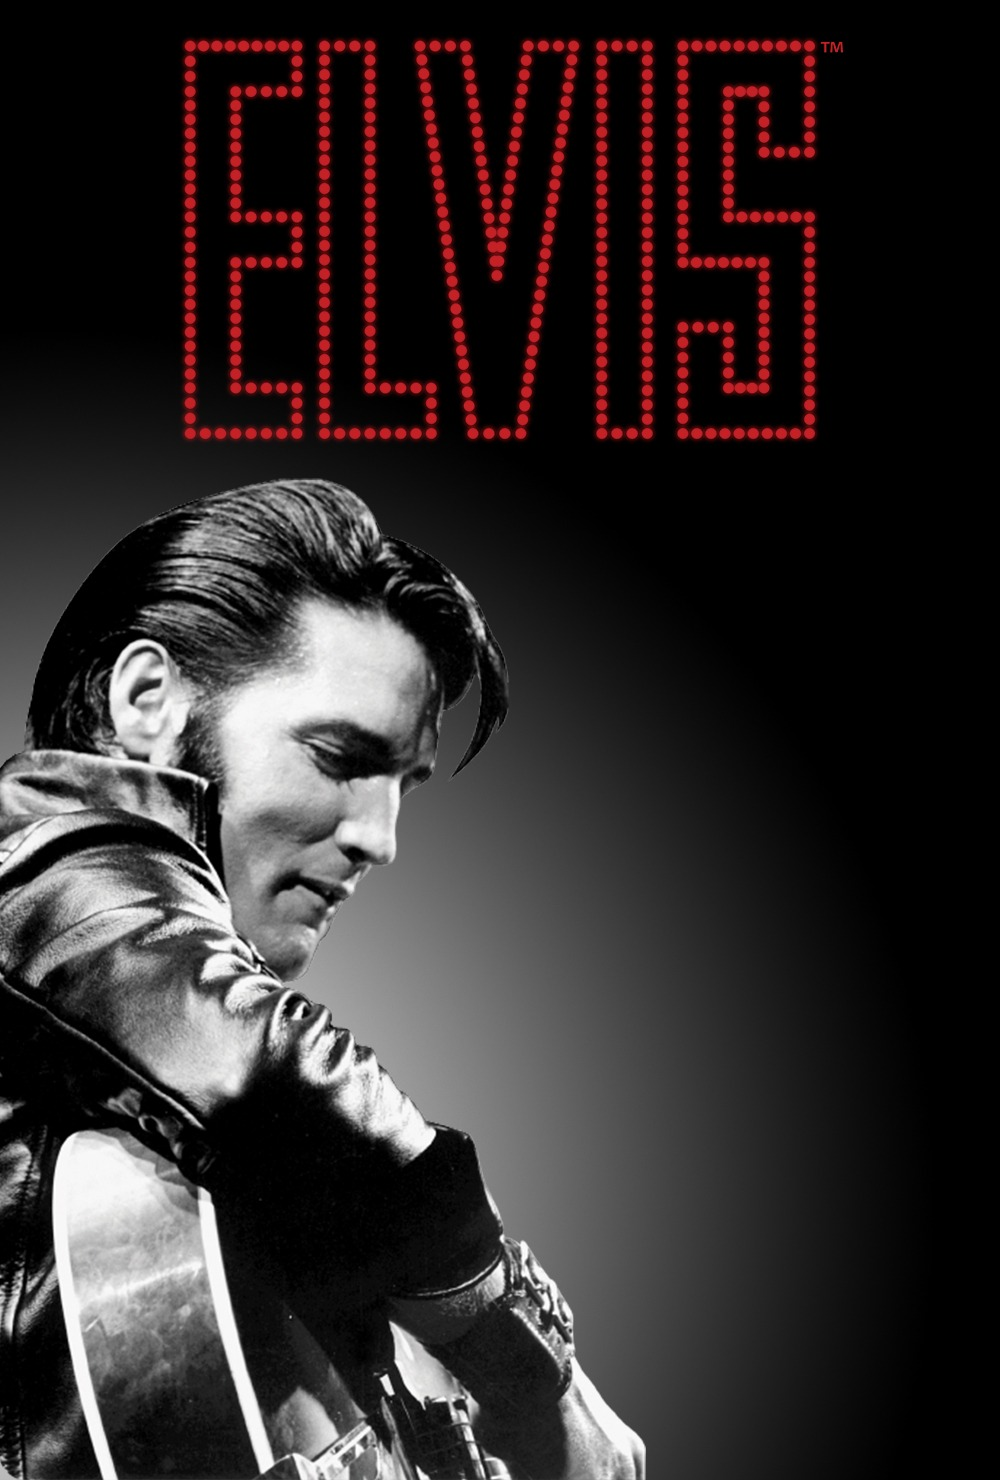 If you live in the Lehigh Valley area local club members will gather for a dinner and attend the Elvis TV Special movie night on Monday, August 20th at the Center Valley 16 Theater. Please contact the club if you would like to attend this local event.